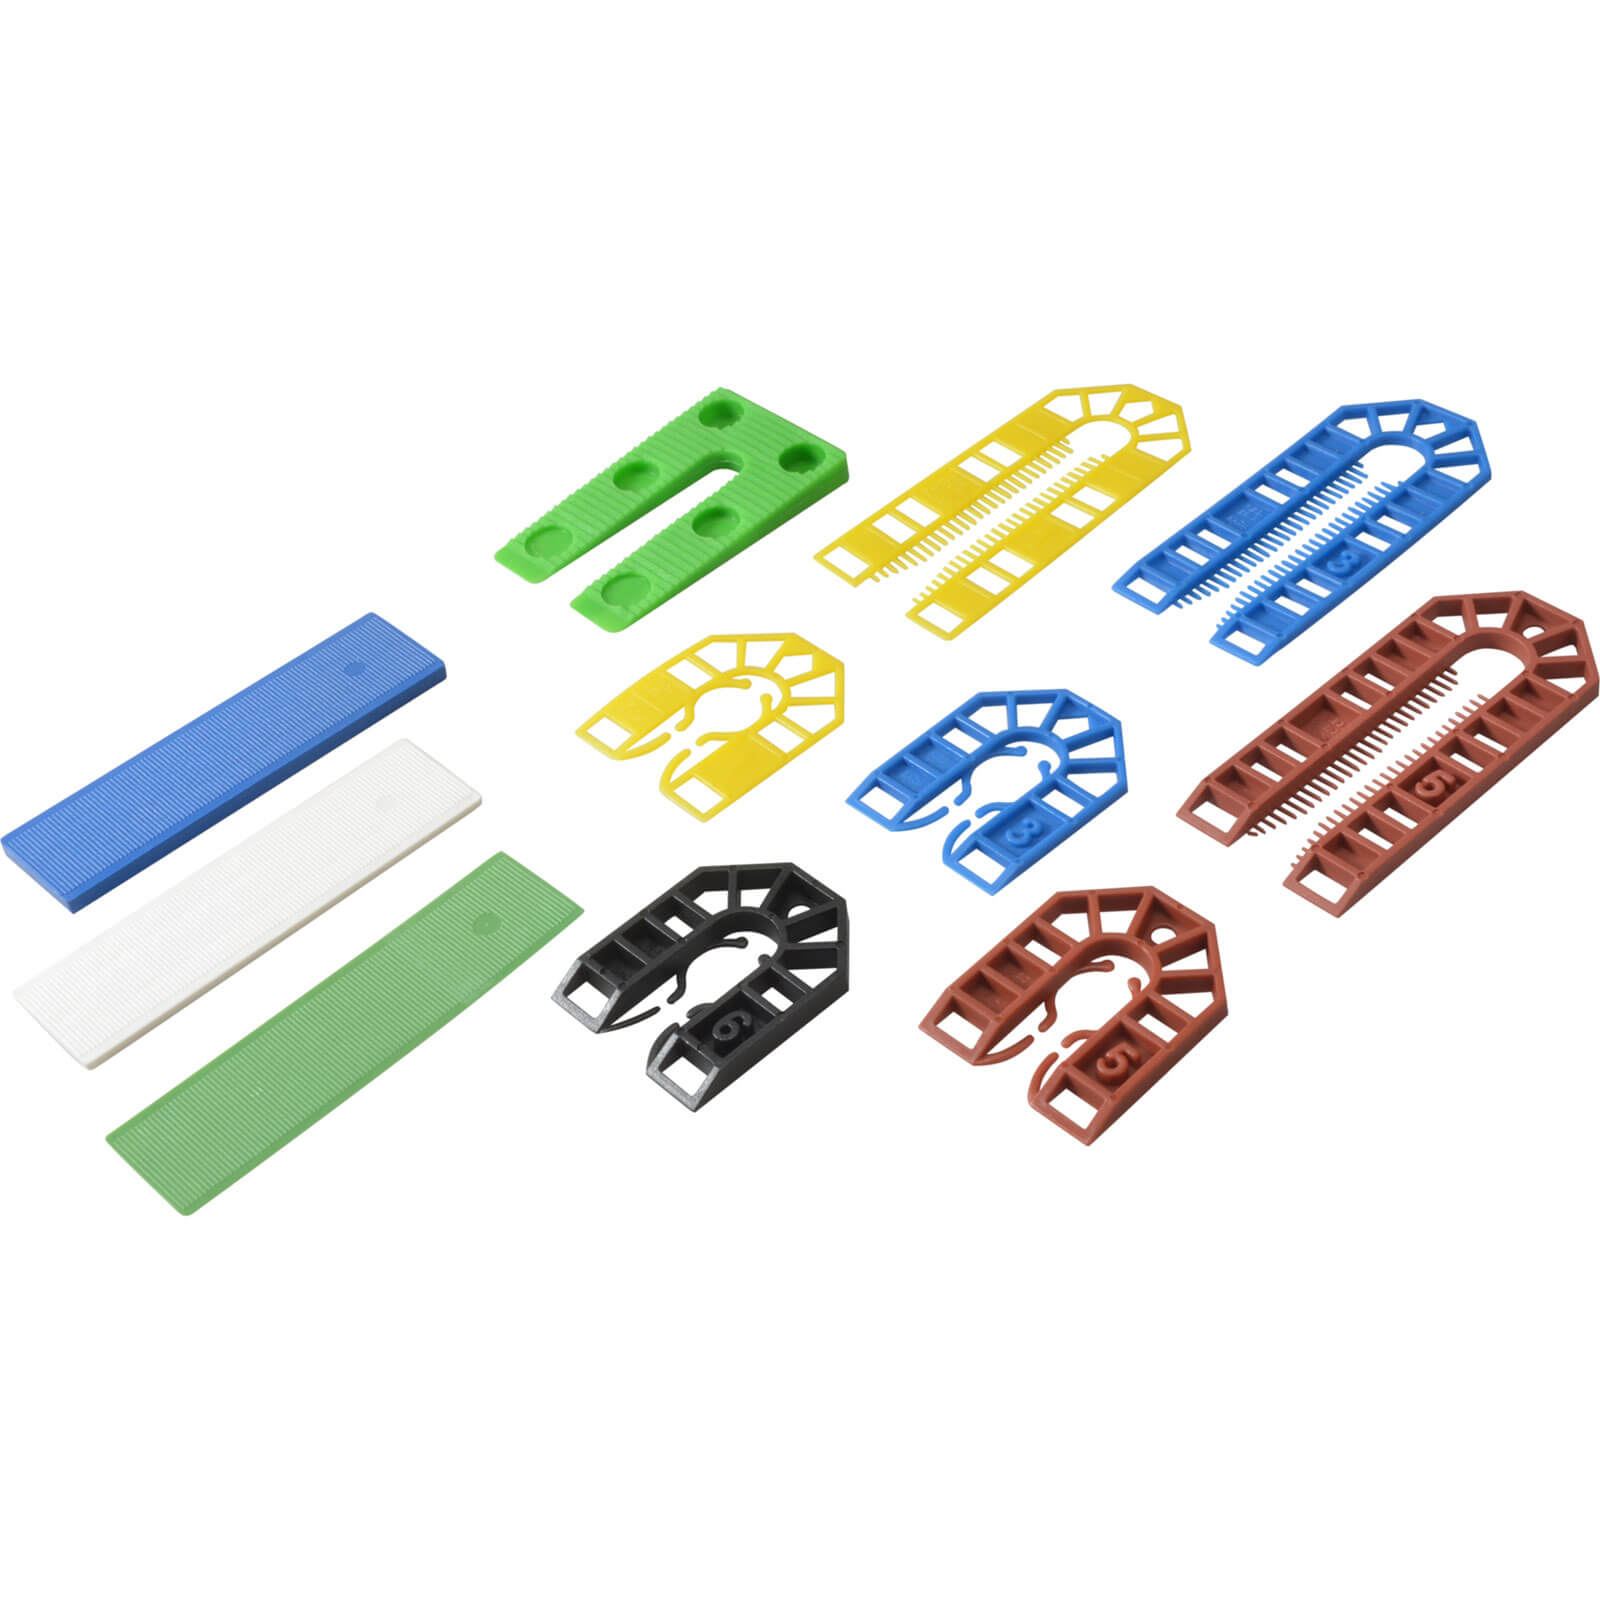 Image of Broadfix Assorted Leveling Shim Packers Pack of 160